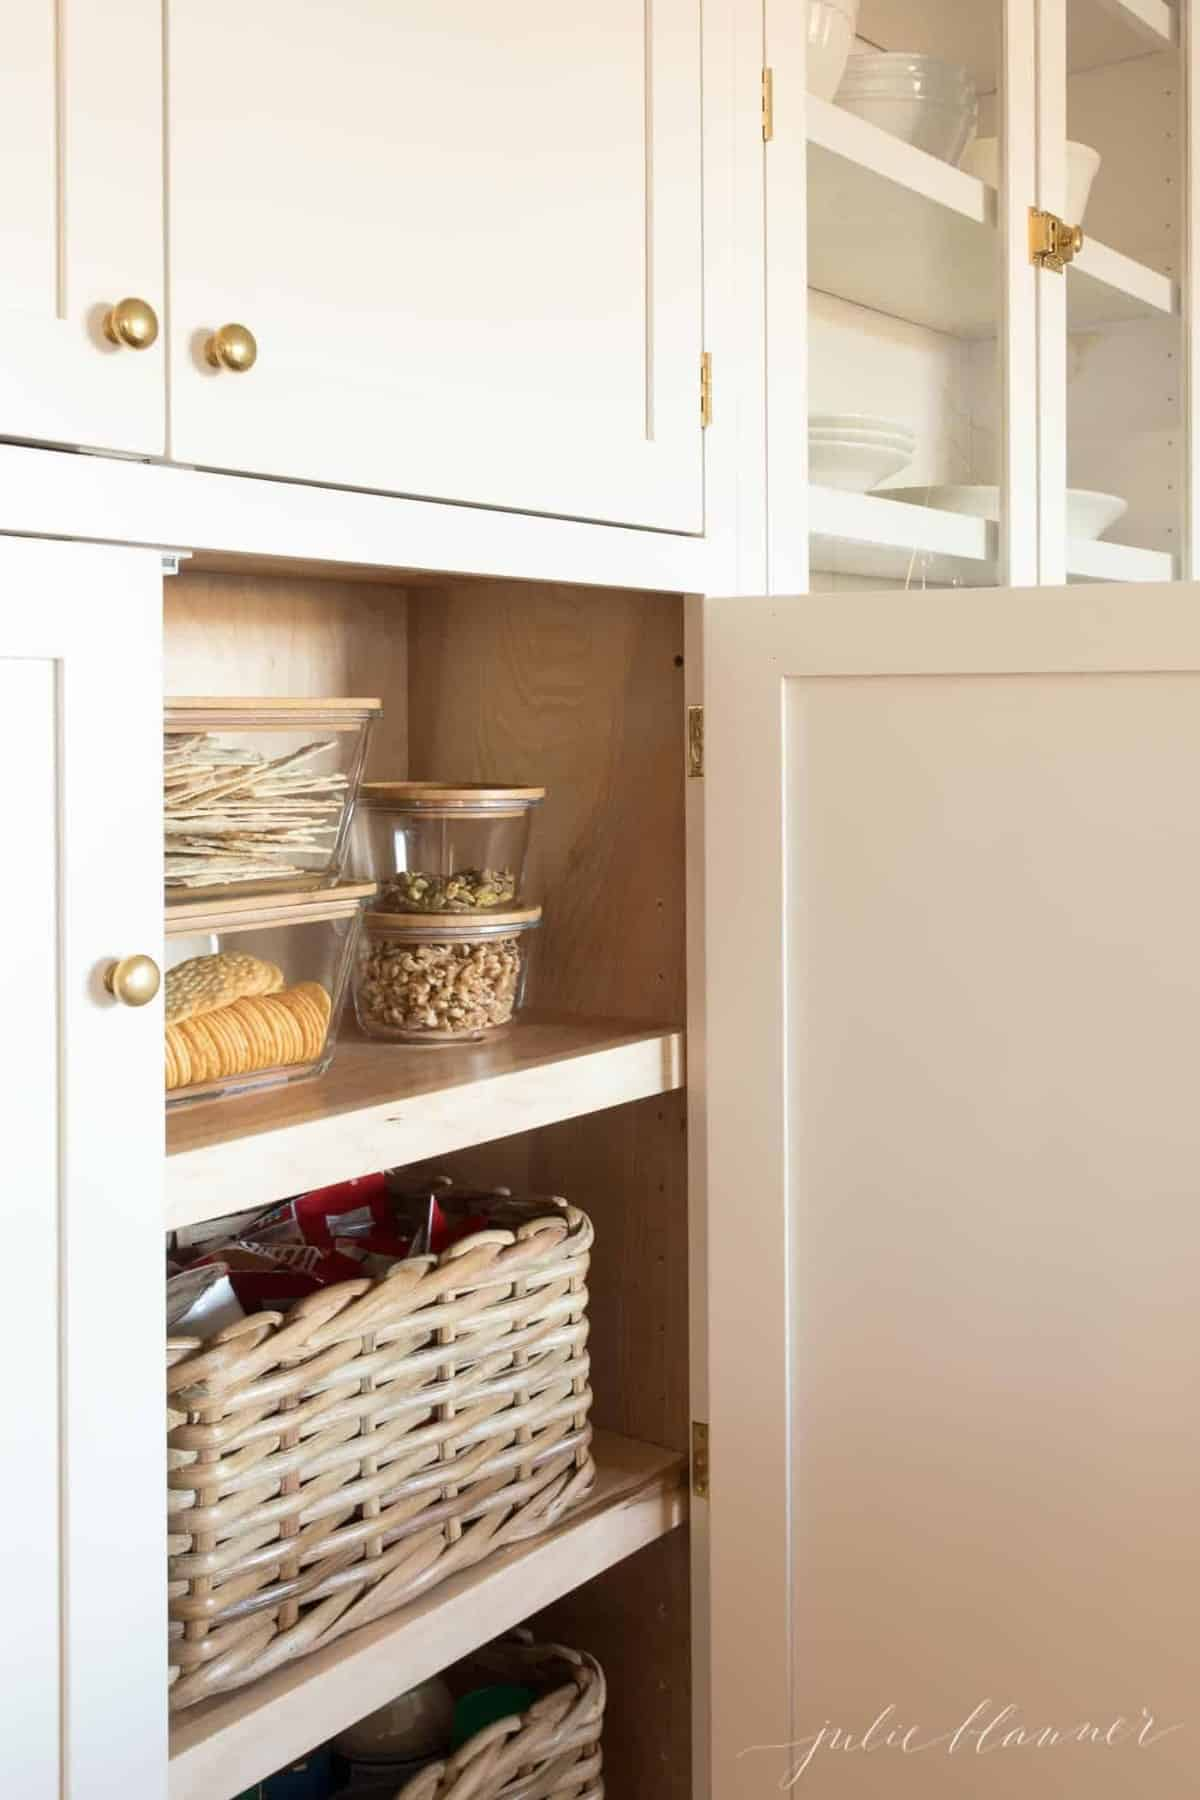 organized pantry with food storage and baskets